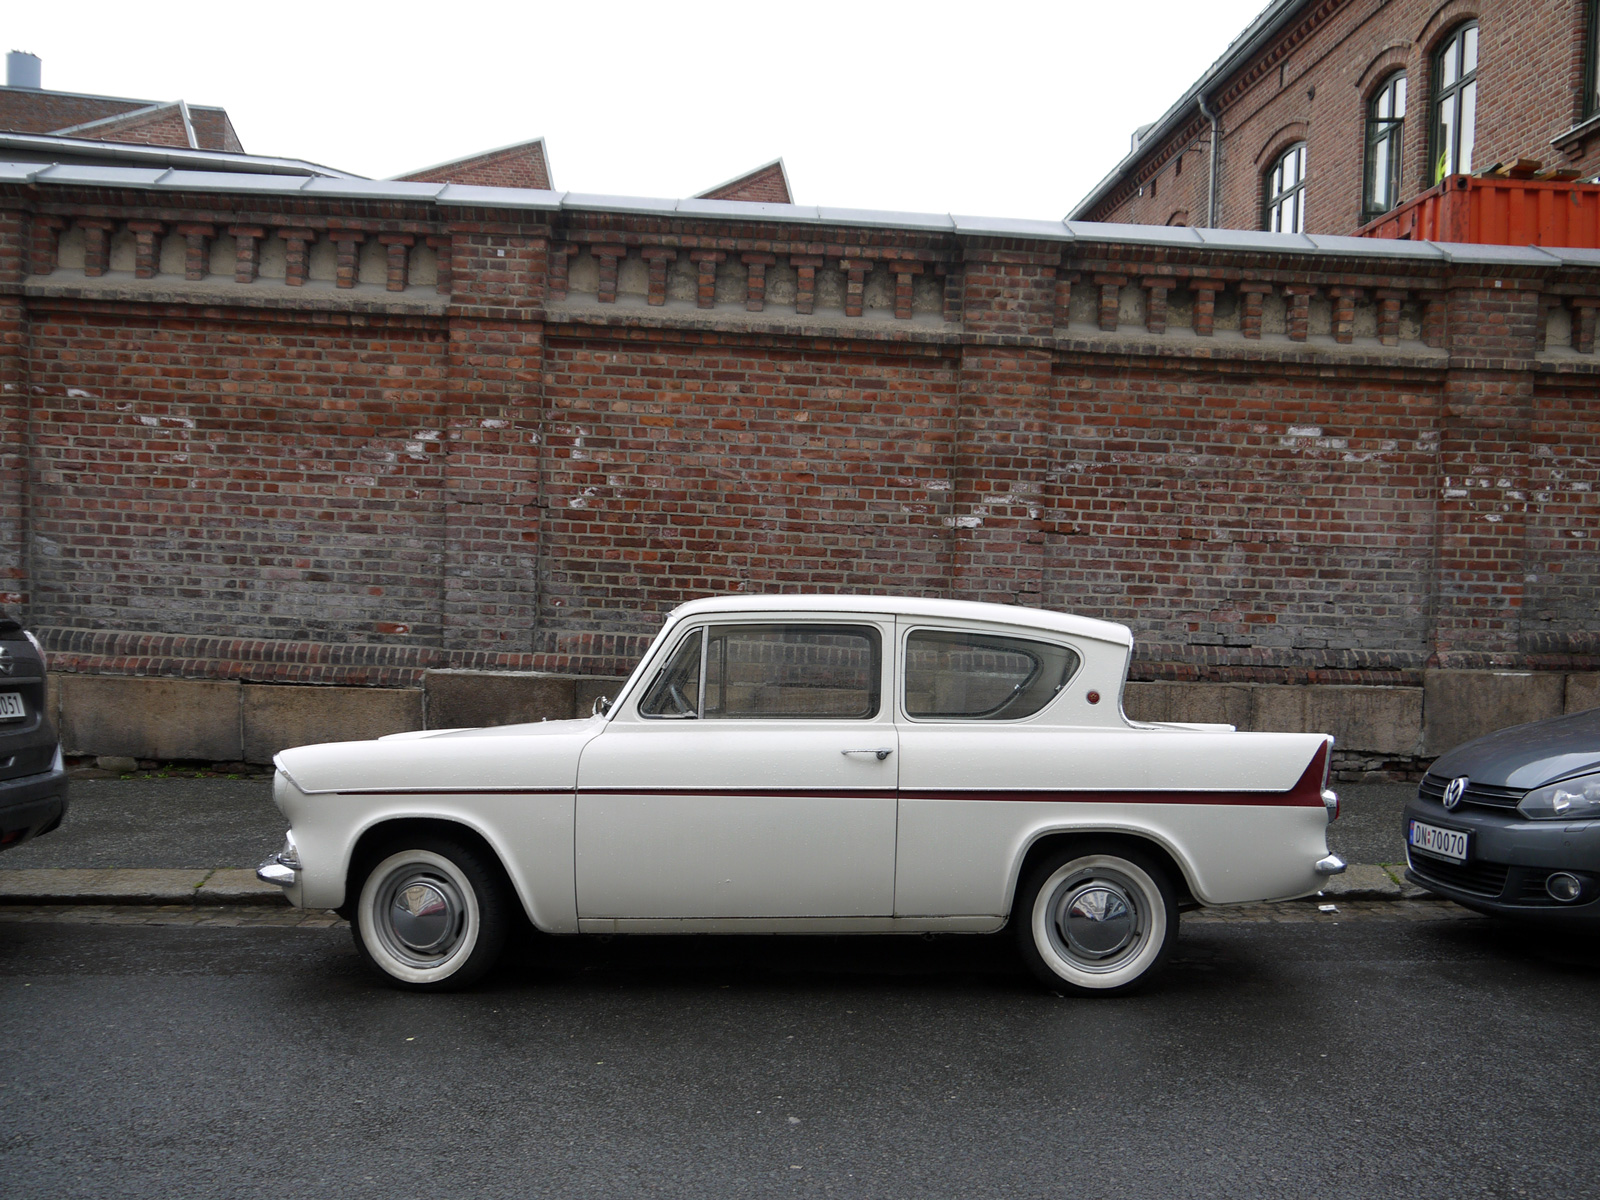 1962 Ford Anglia Deluxe Super 105E 123e Old parked cars